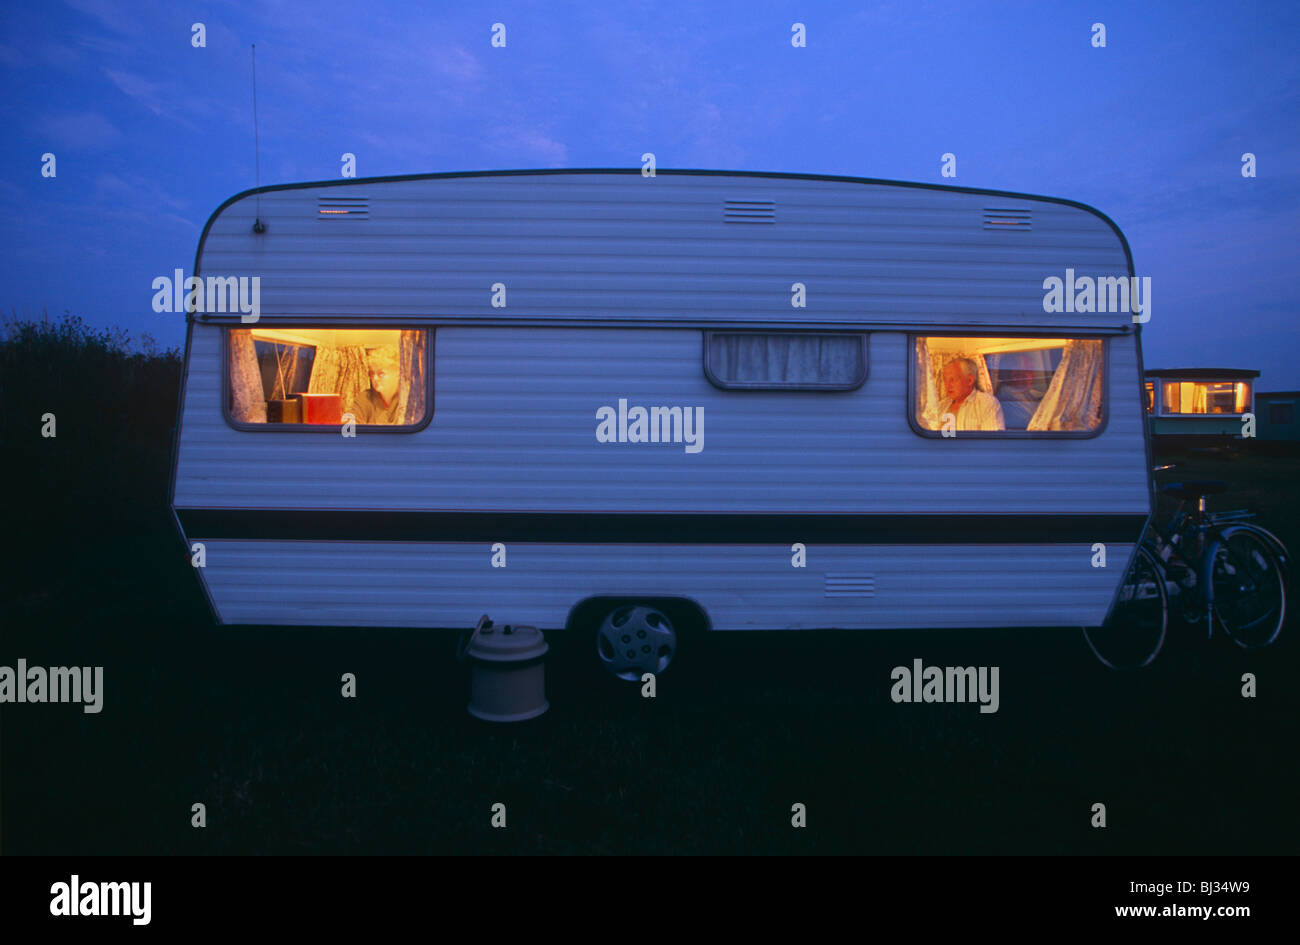 warm-orange-glow-of-two-caravan-campers-